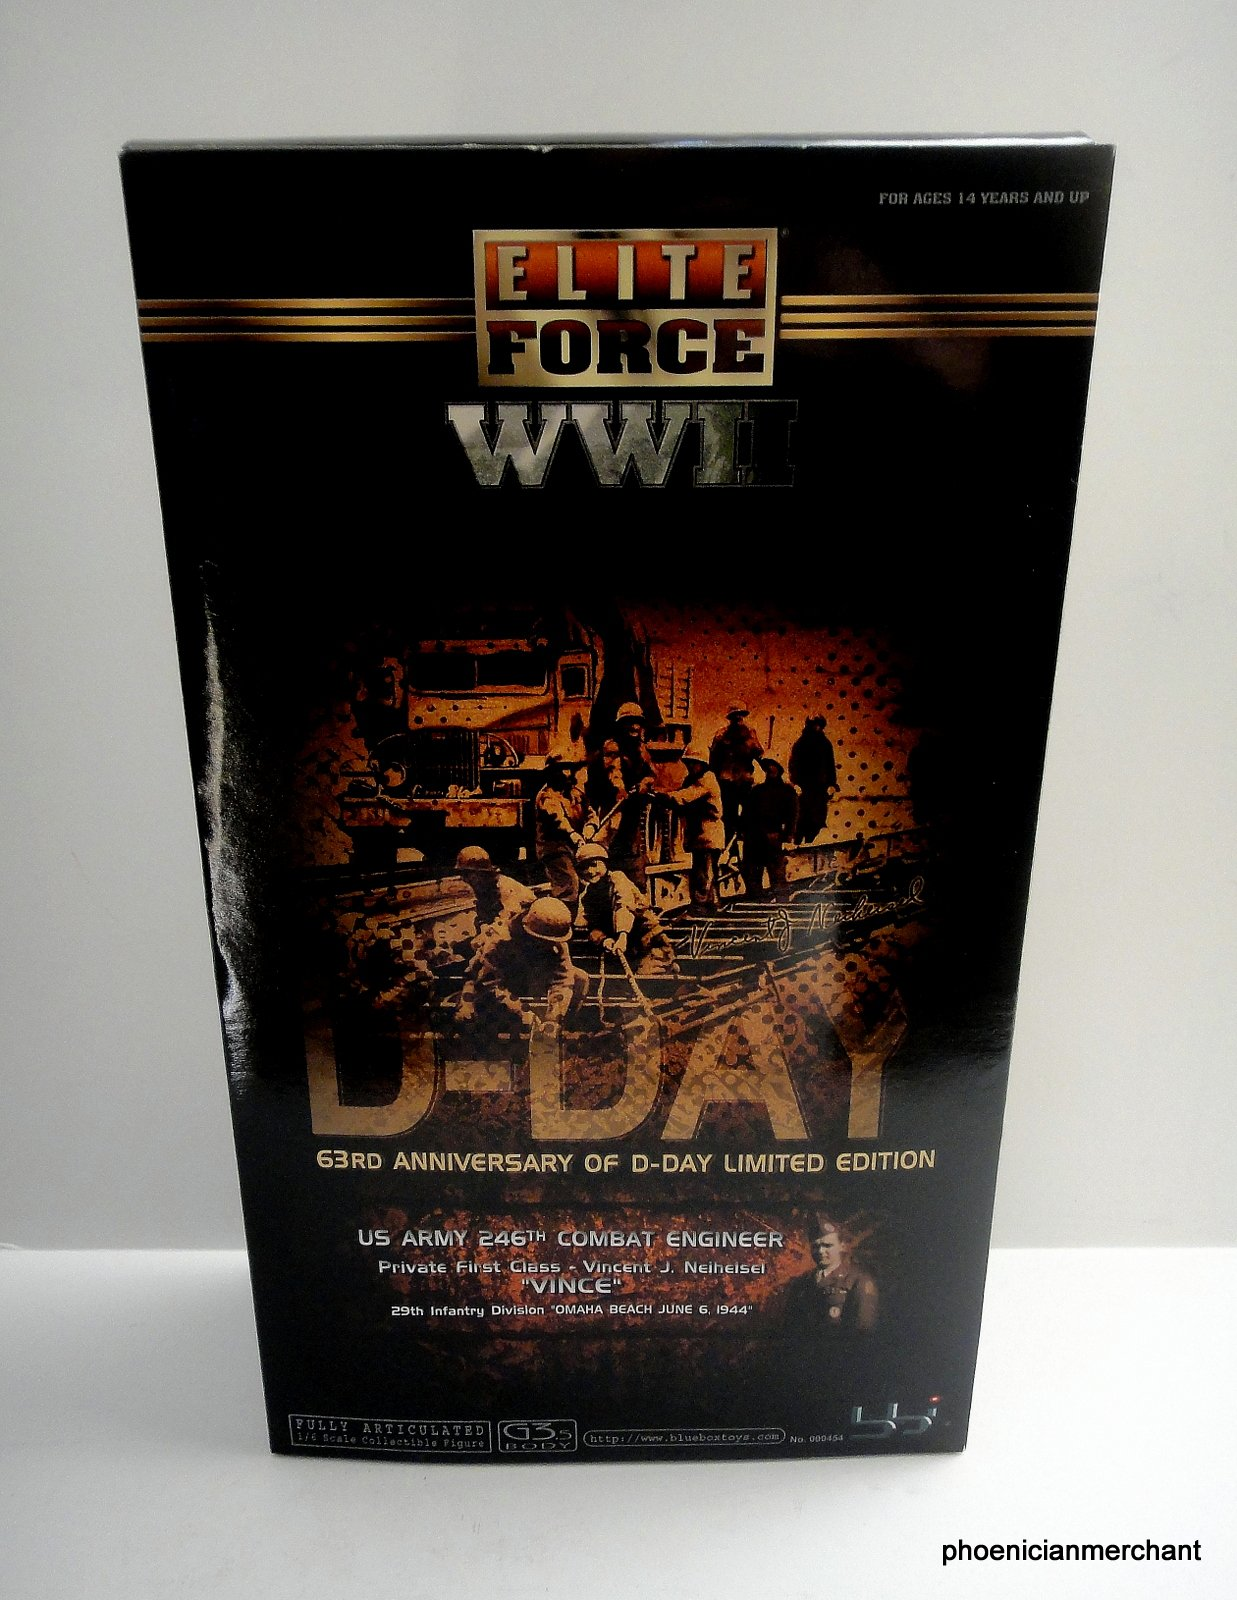 bbi Elite Force WII 1944 D-Day US Army 246th Combat Engineer Vincent J Neiheisei